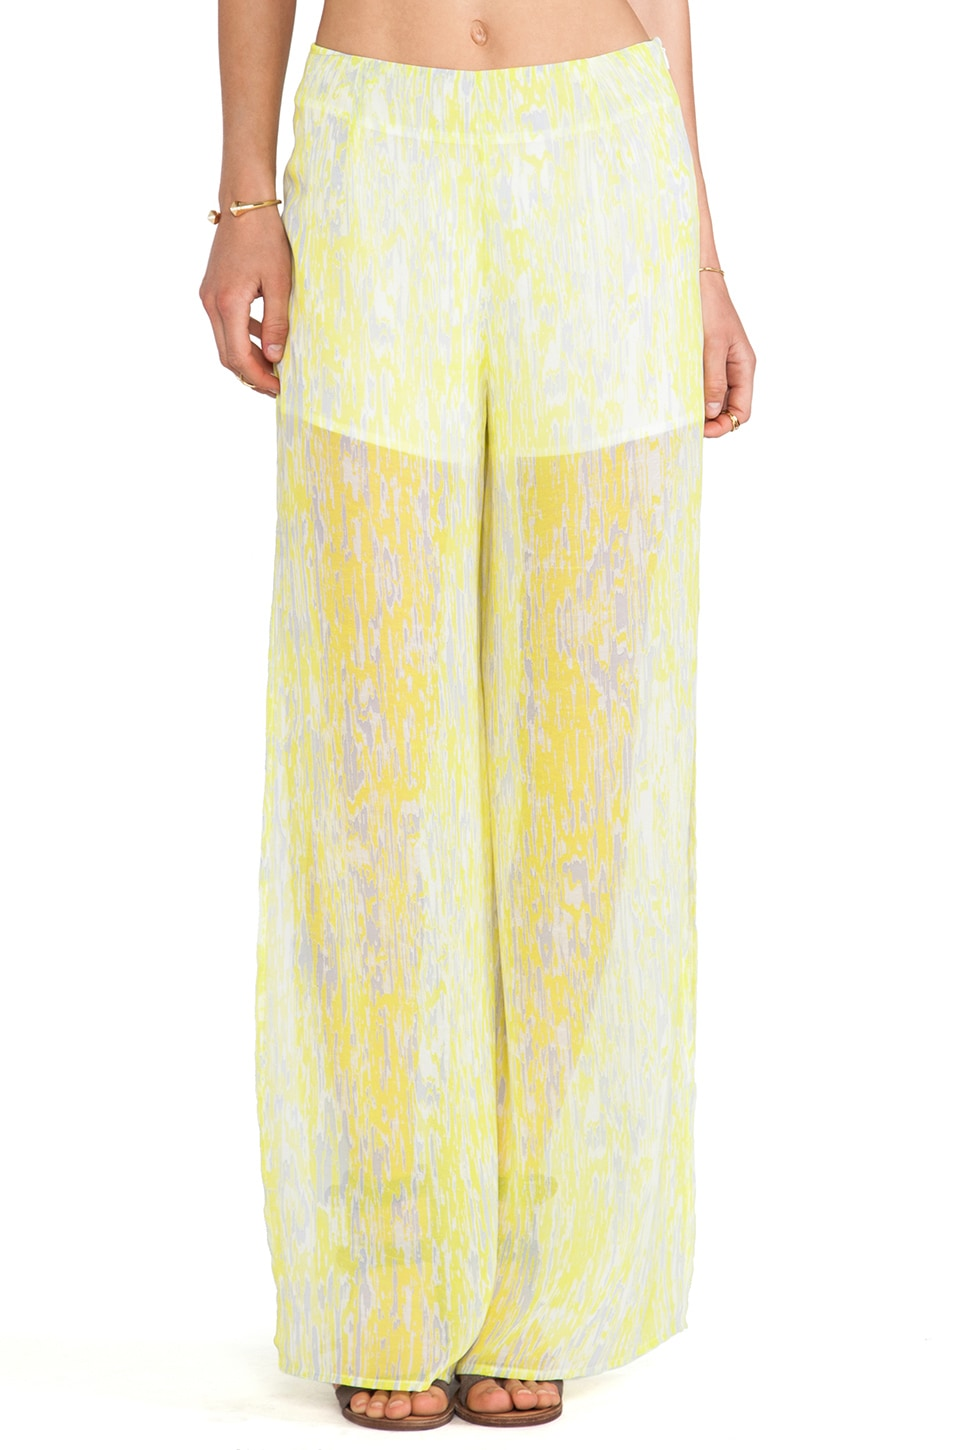 Lovers + Friends Scorpio Pants in Abstract Yellow